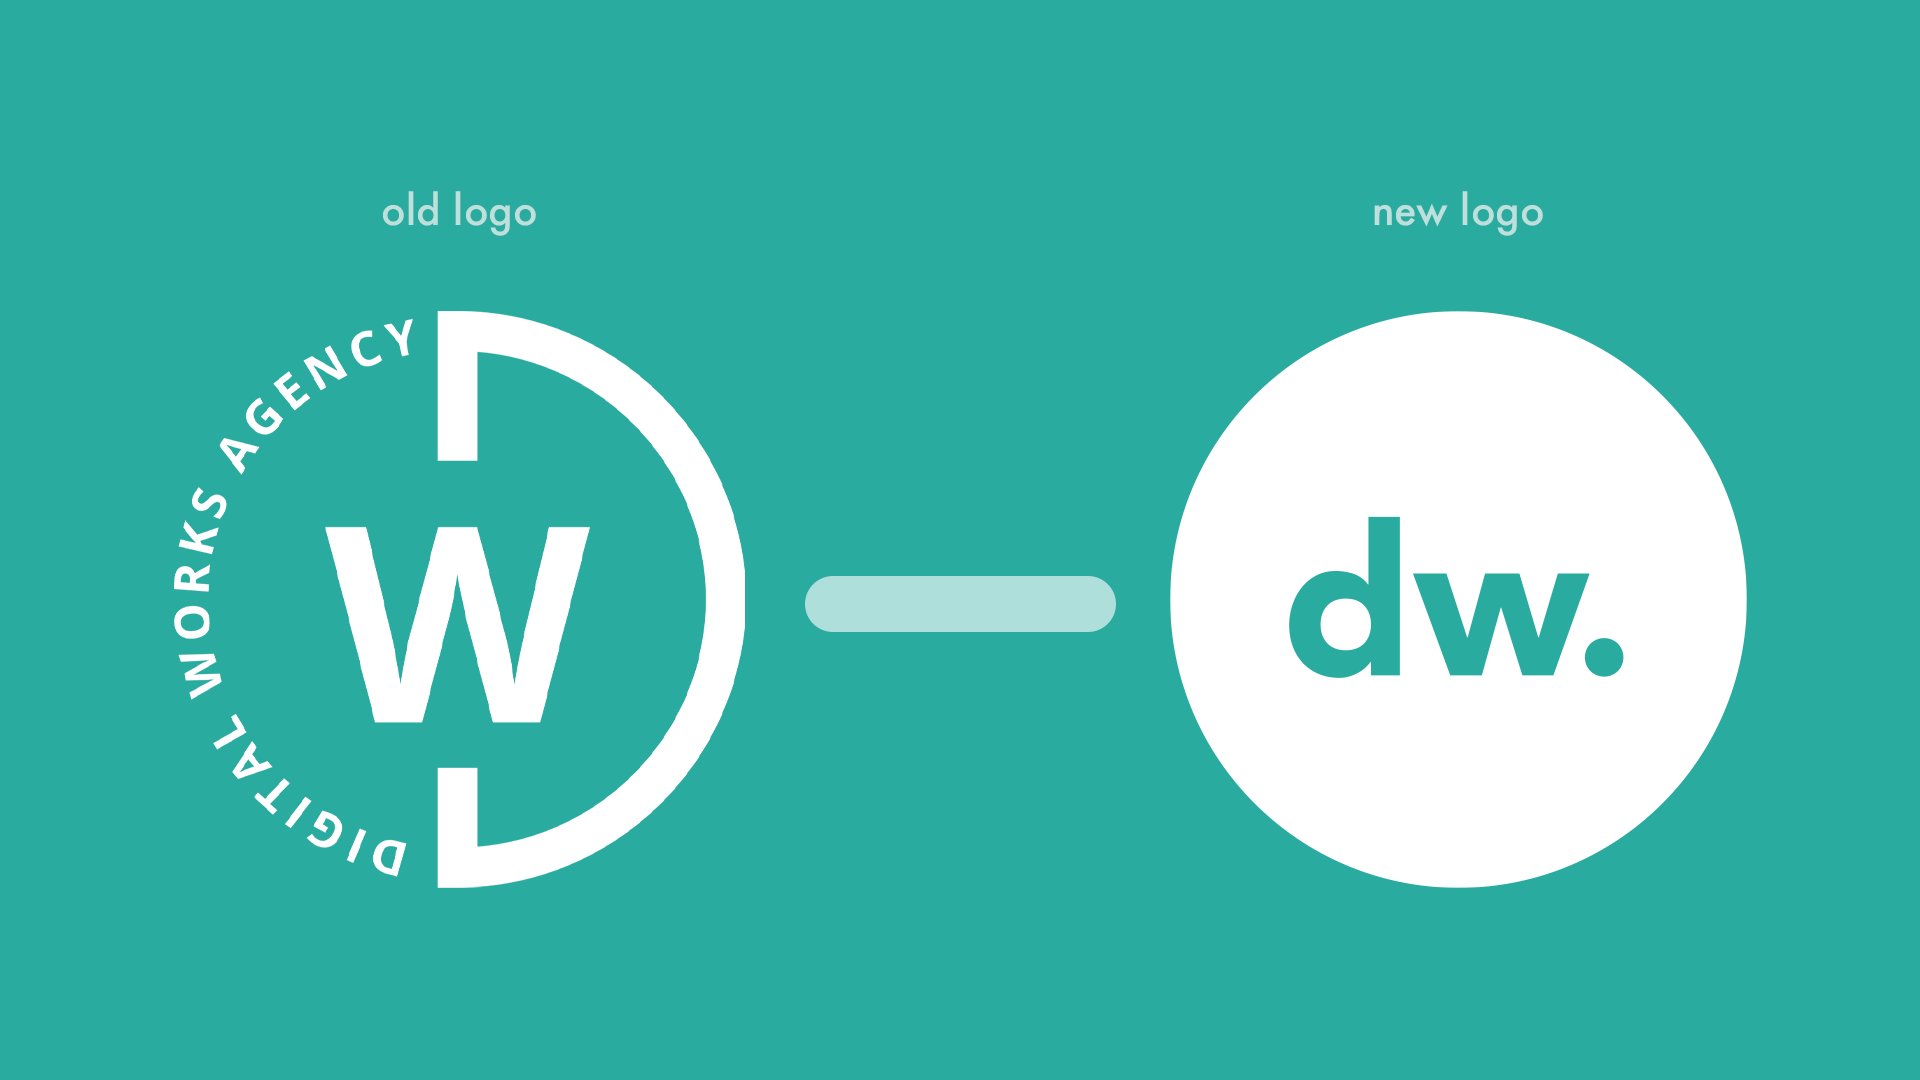 digital works logo redesign.png